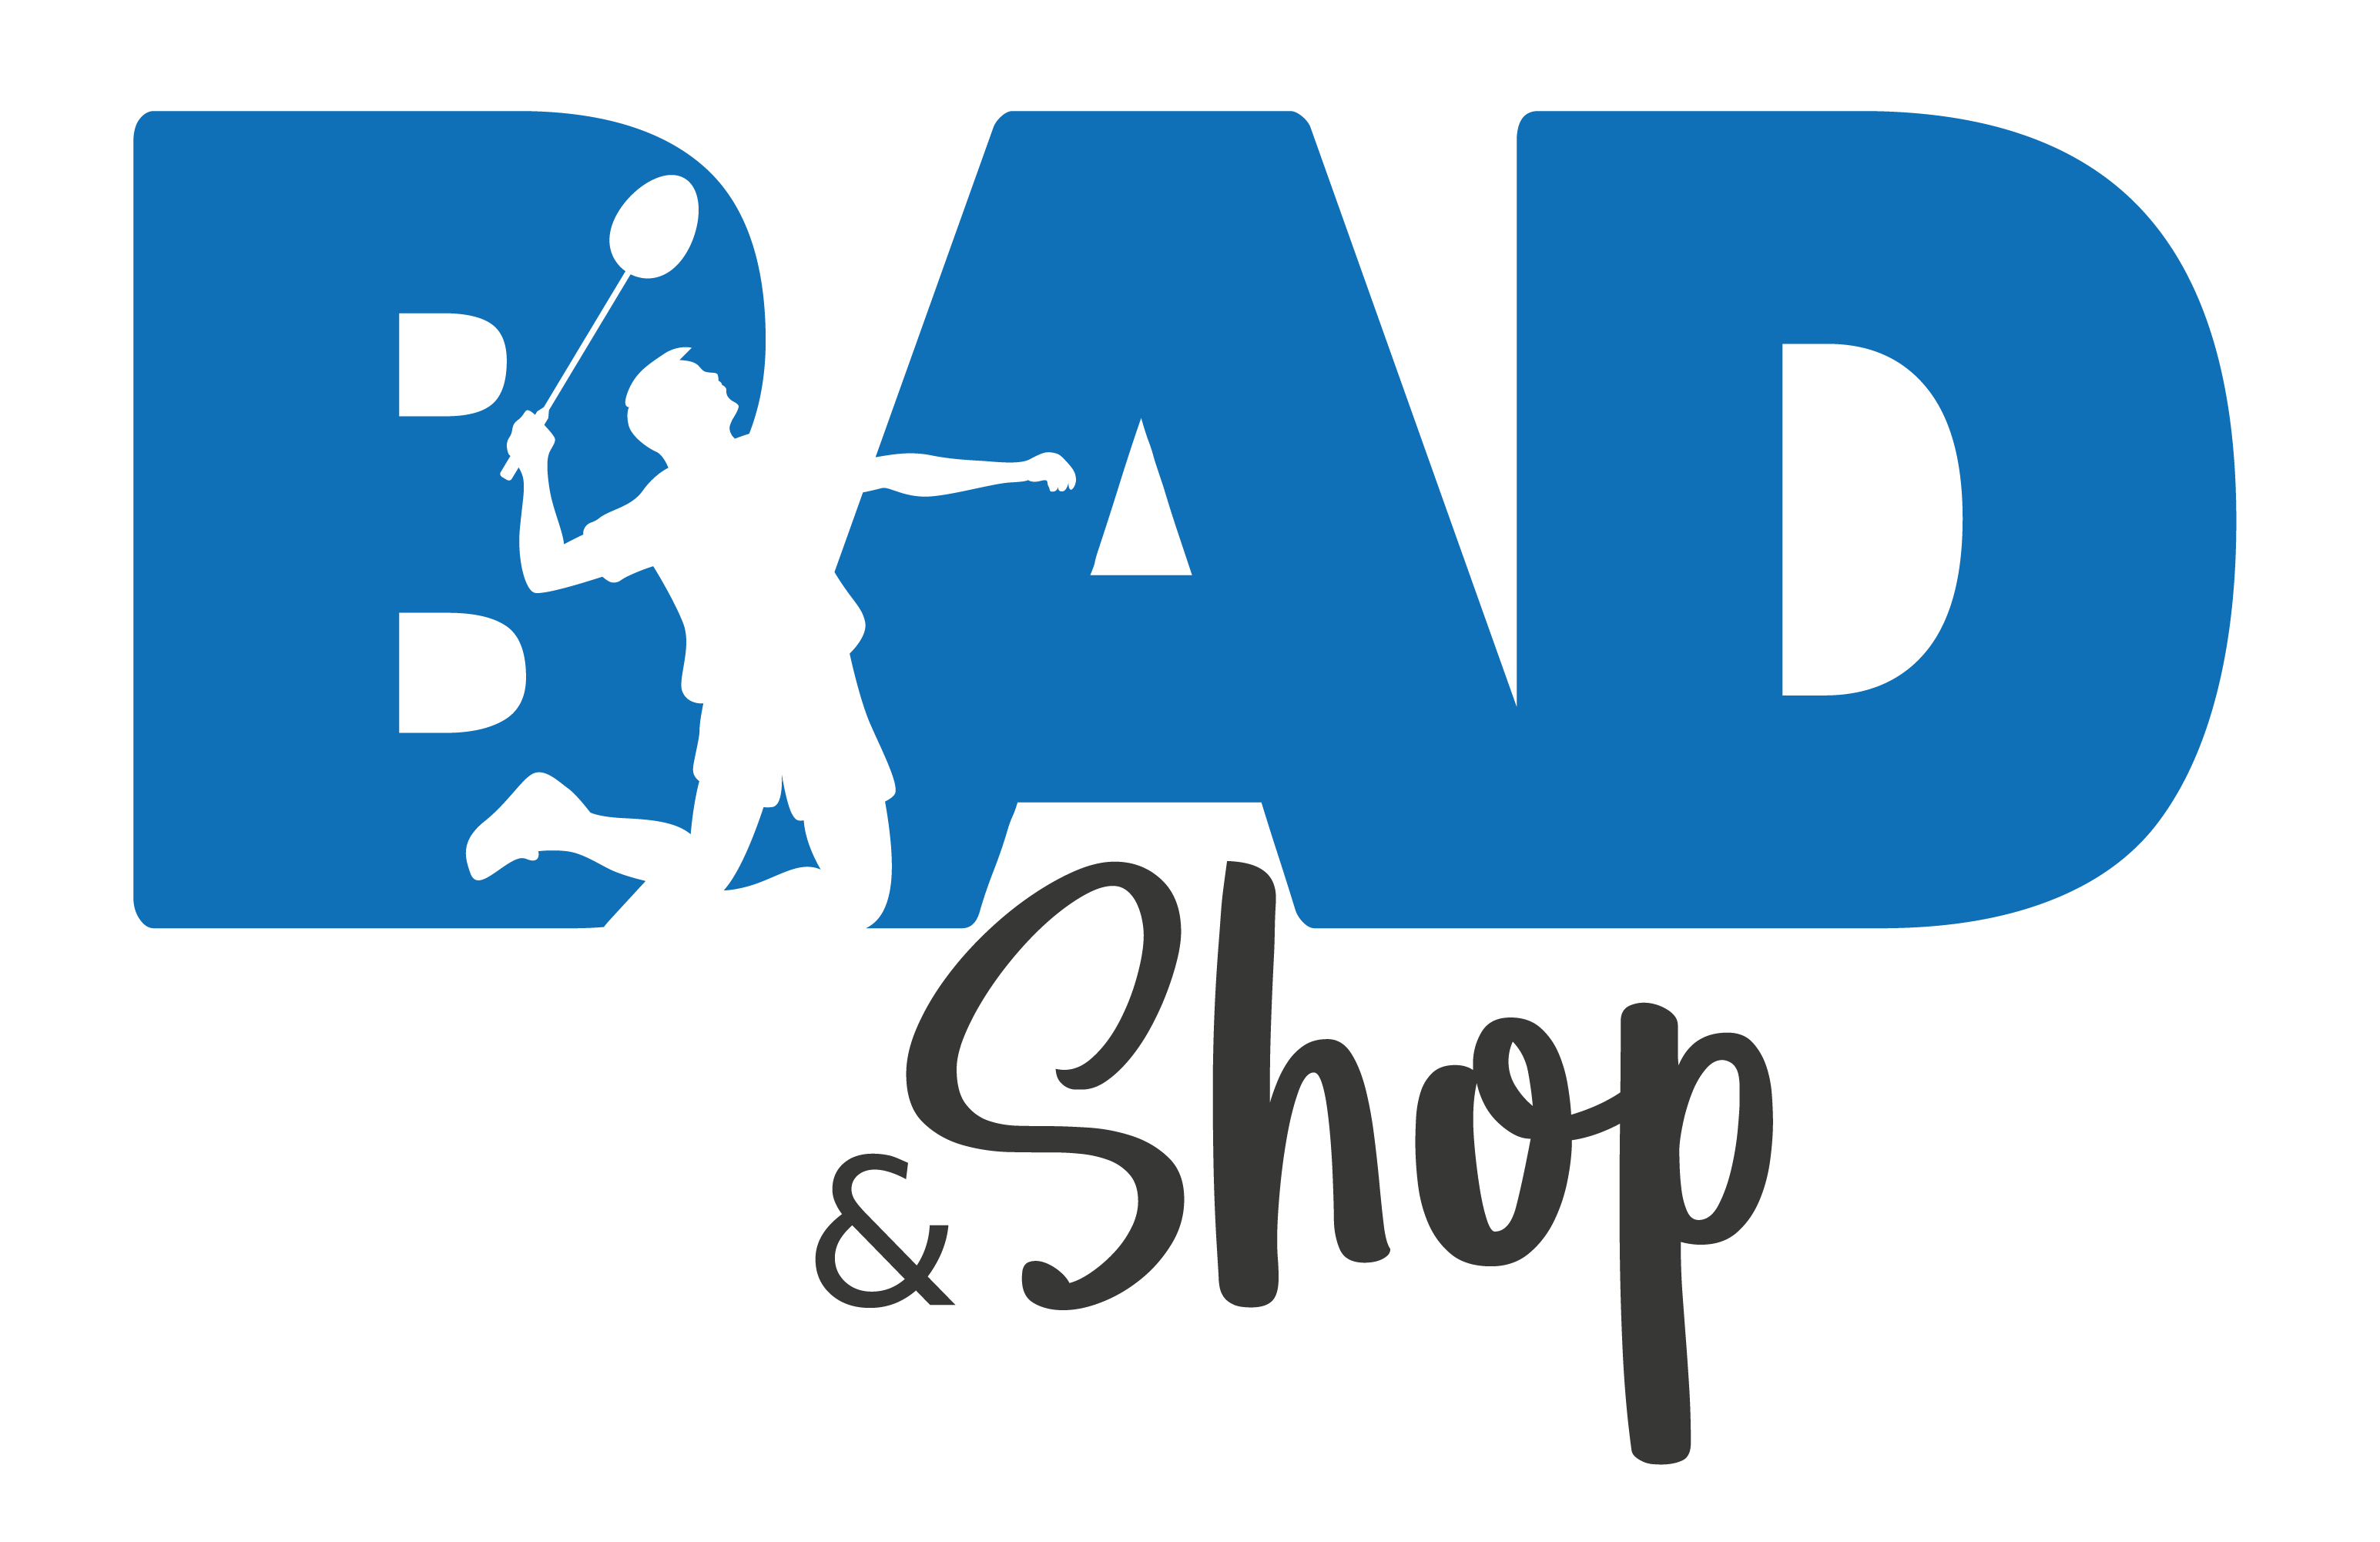 Bad and Shop